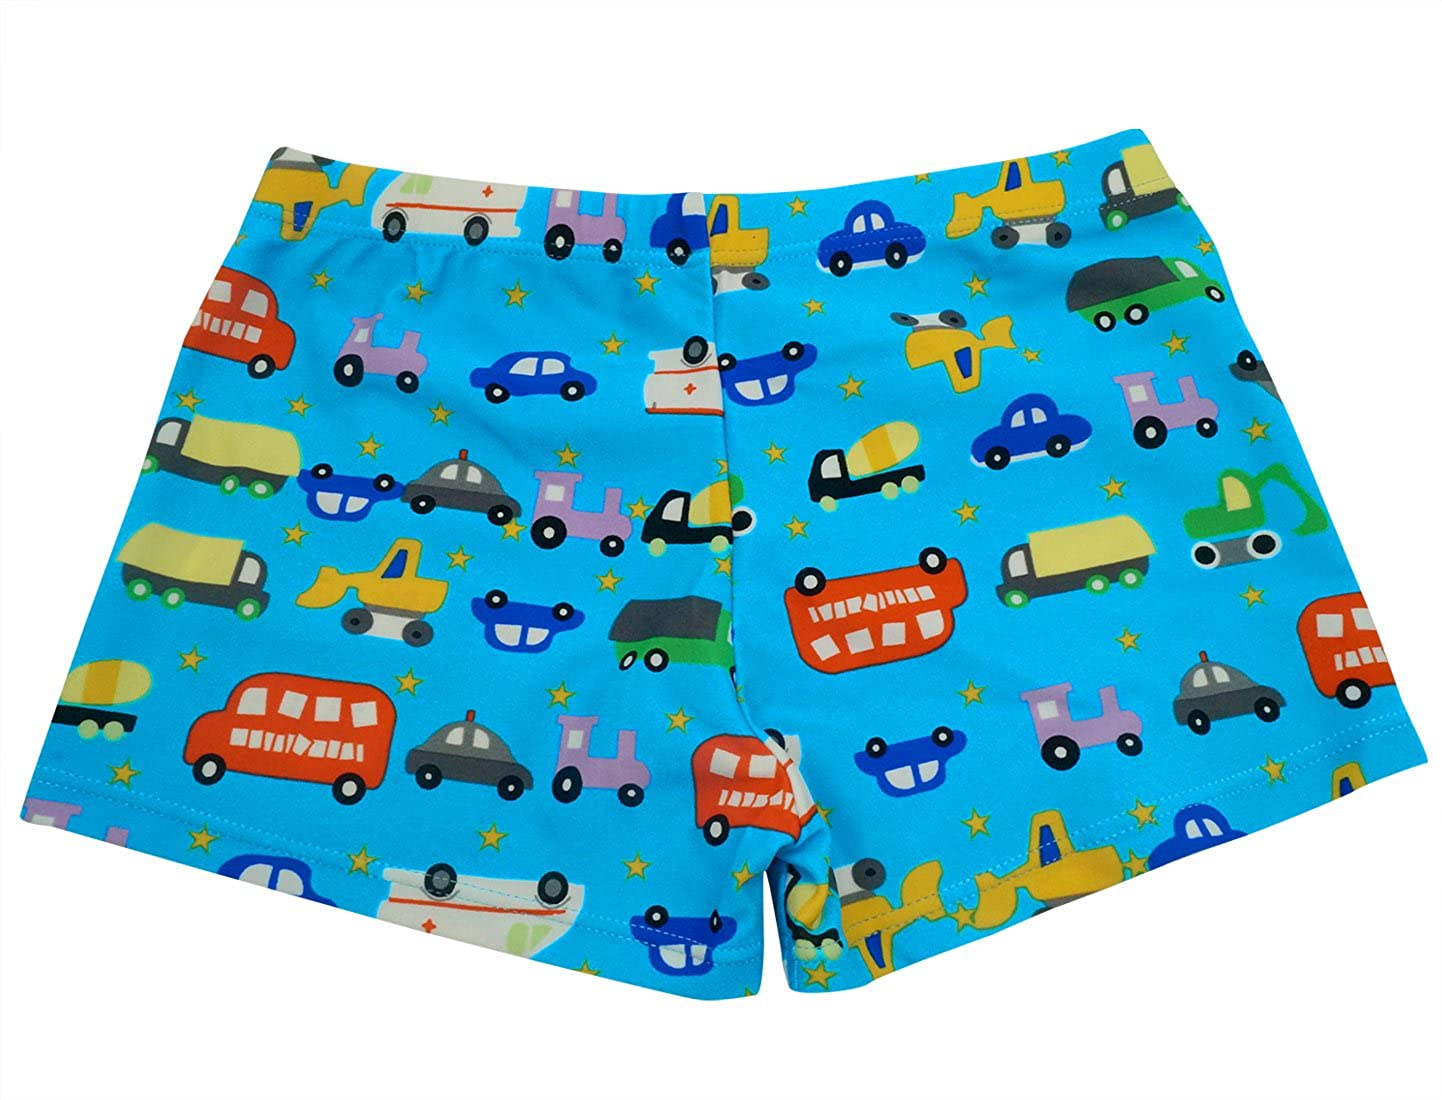 Aivtalk Boys Swim Trunks Dinosaur Boxer Briefs Bathing Suit Swimming Underwear